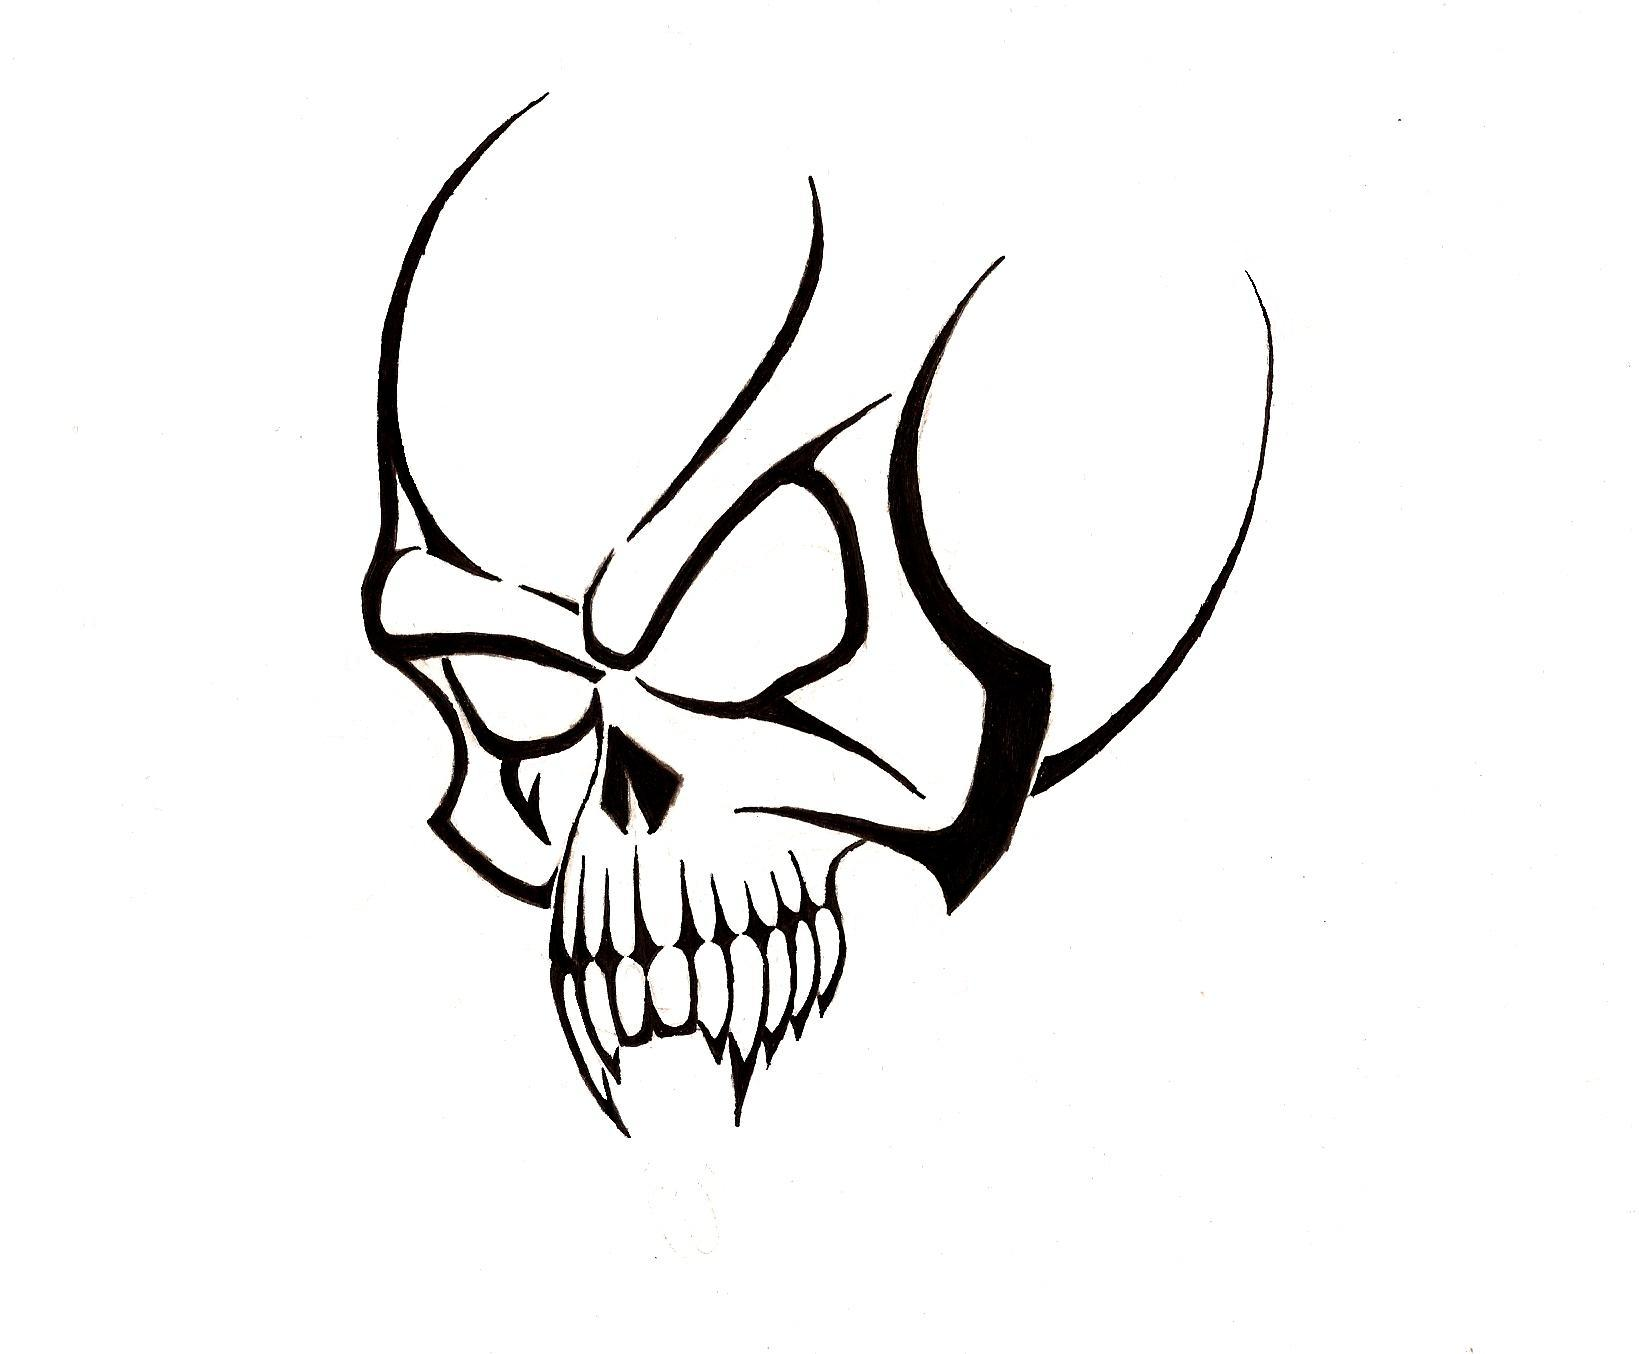 Download Free Tattoo Designs - Cliparts.co